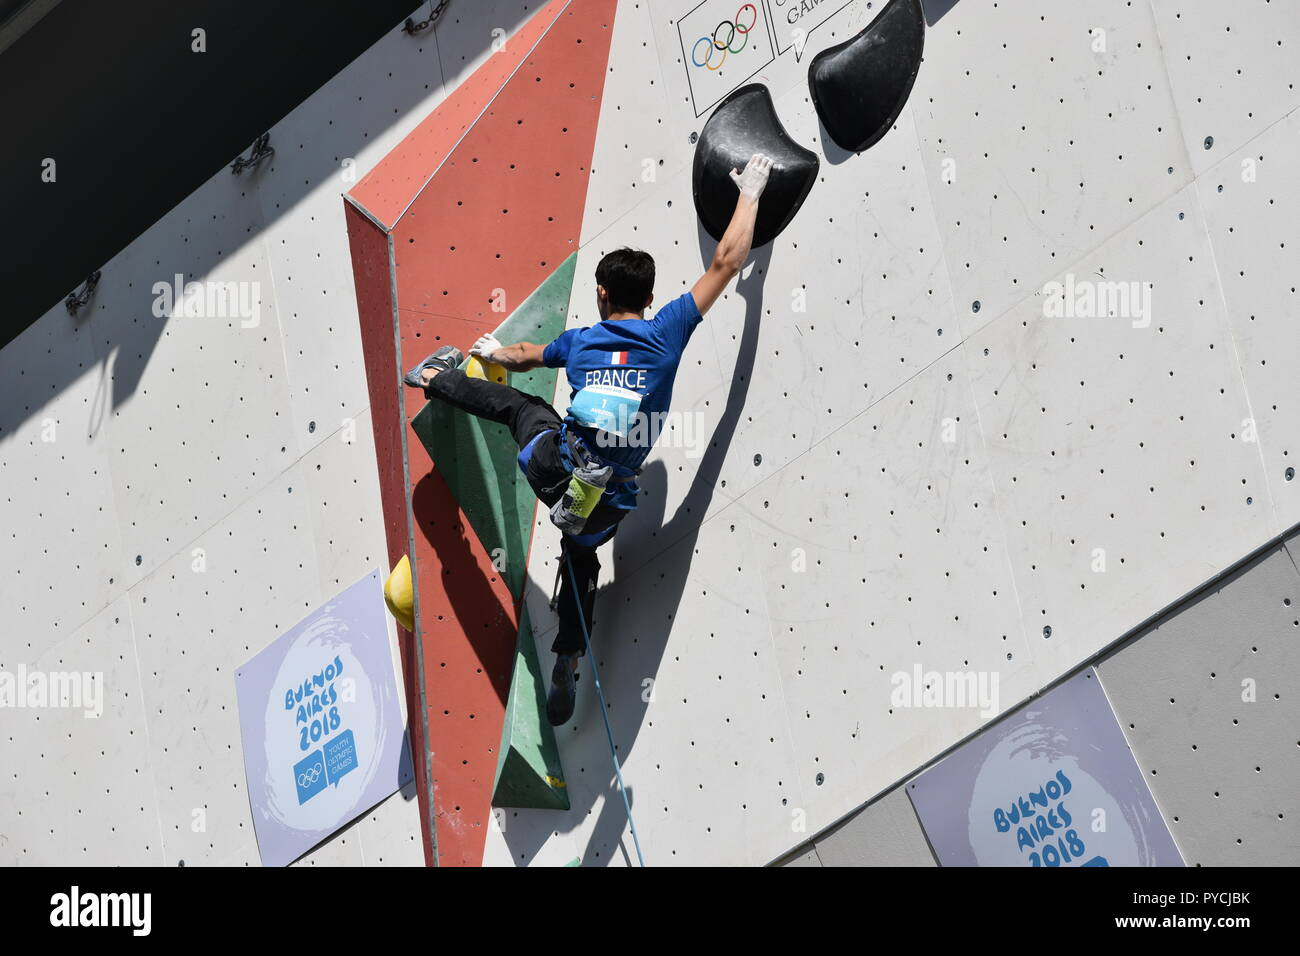 bronze medallist Sam Avezou from France at Youth Olympic Games 2018 Buenos Aires sport climbing contest - Stock Image